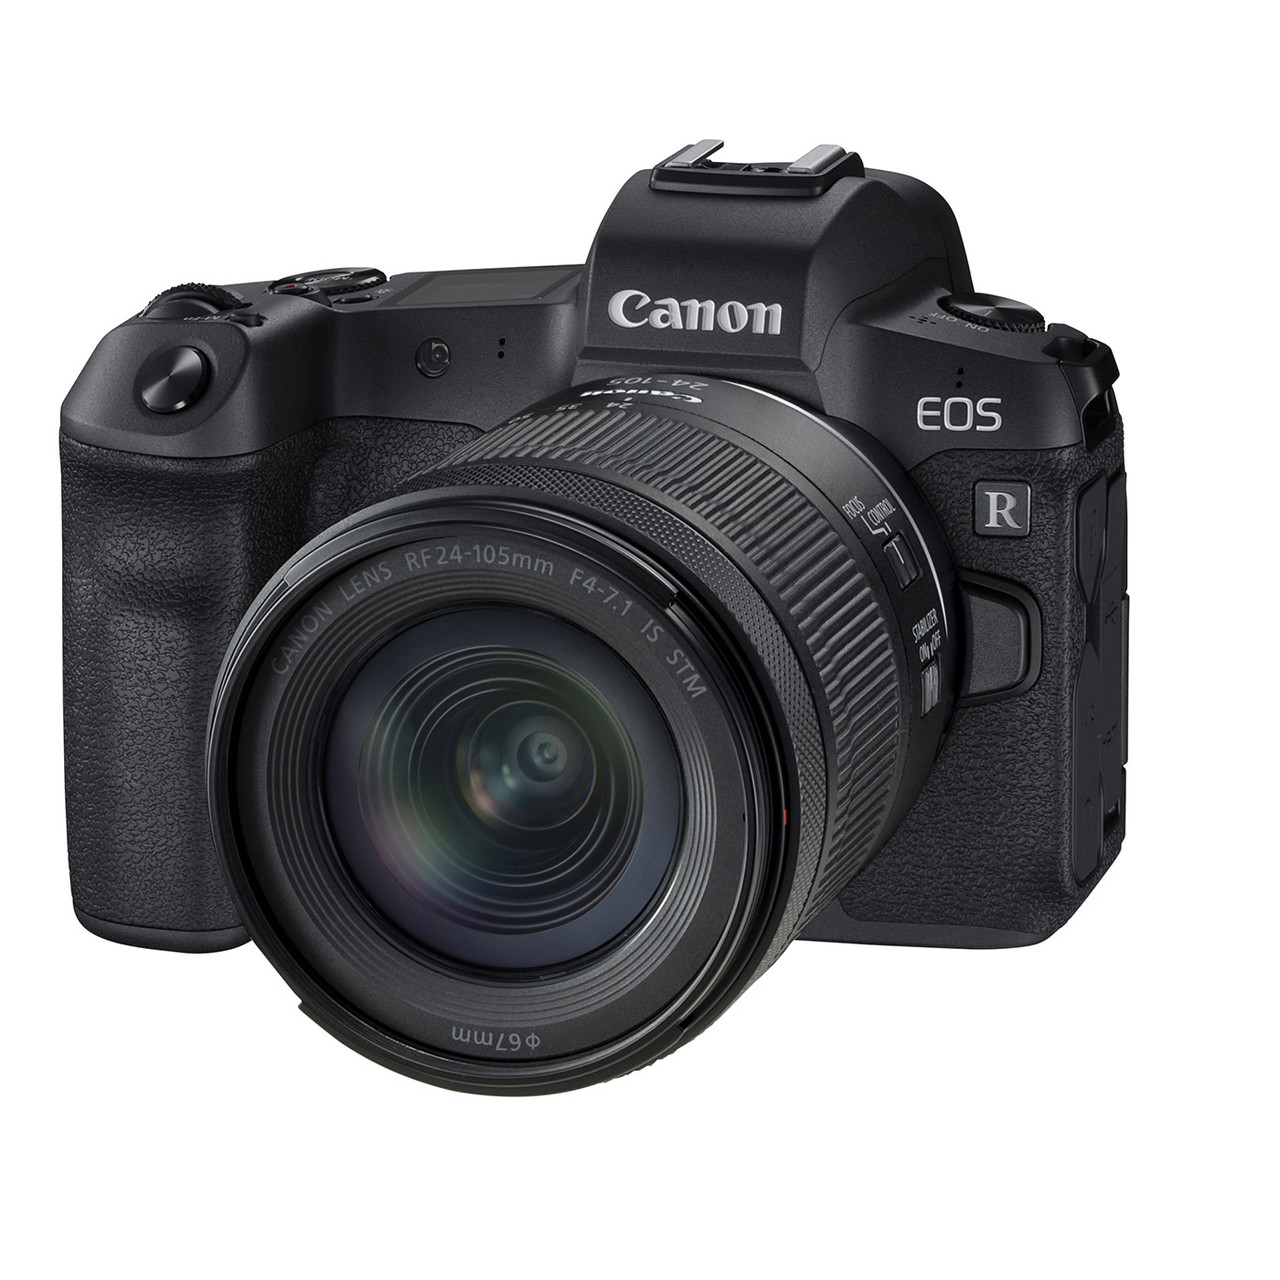 CANON EOS R RF 24-105MM F4-7.1 IS STM KIT